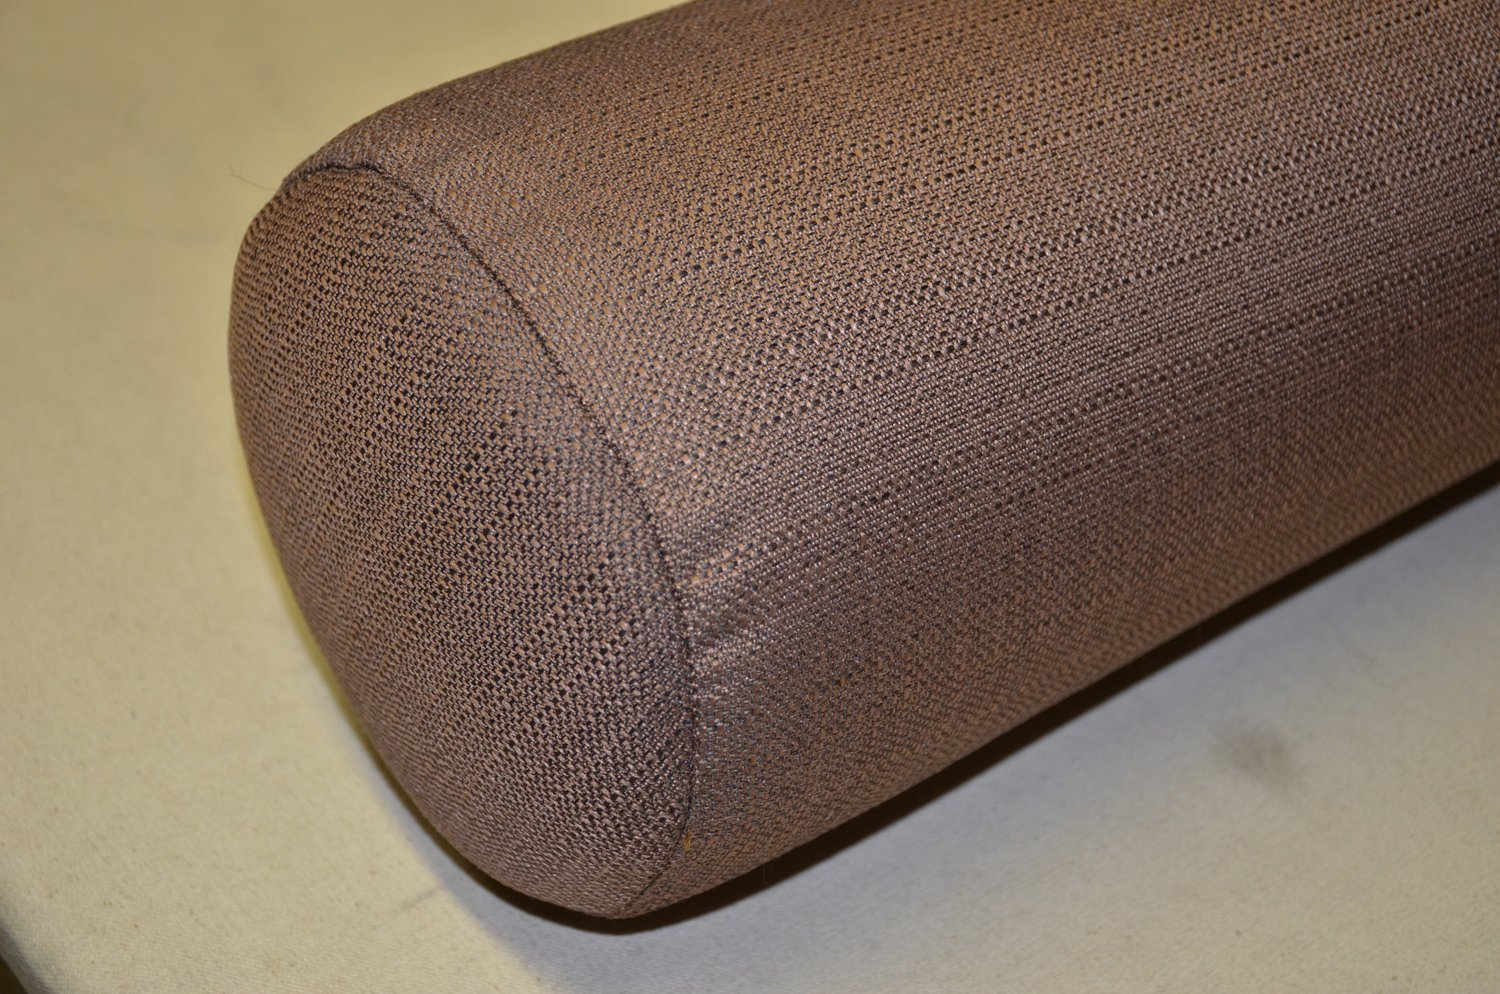 Amazon.com: Round Bolster Pillow Cover and Insert 20: Home